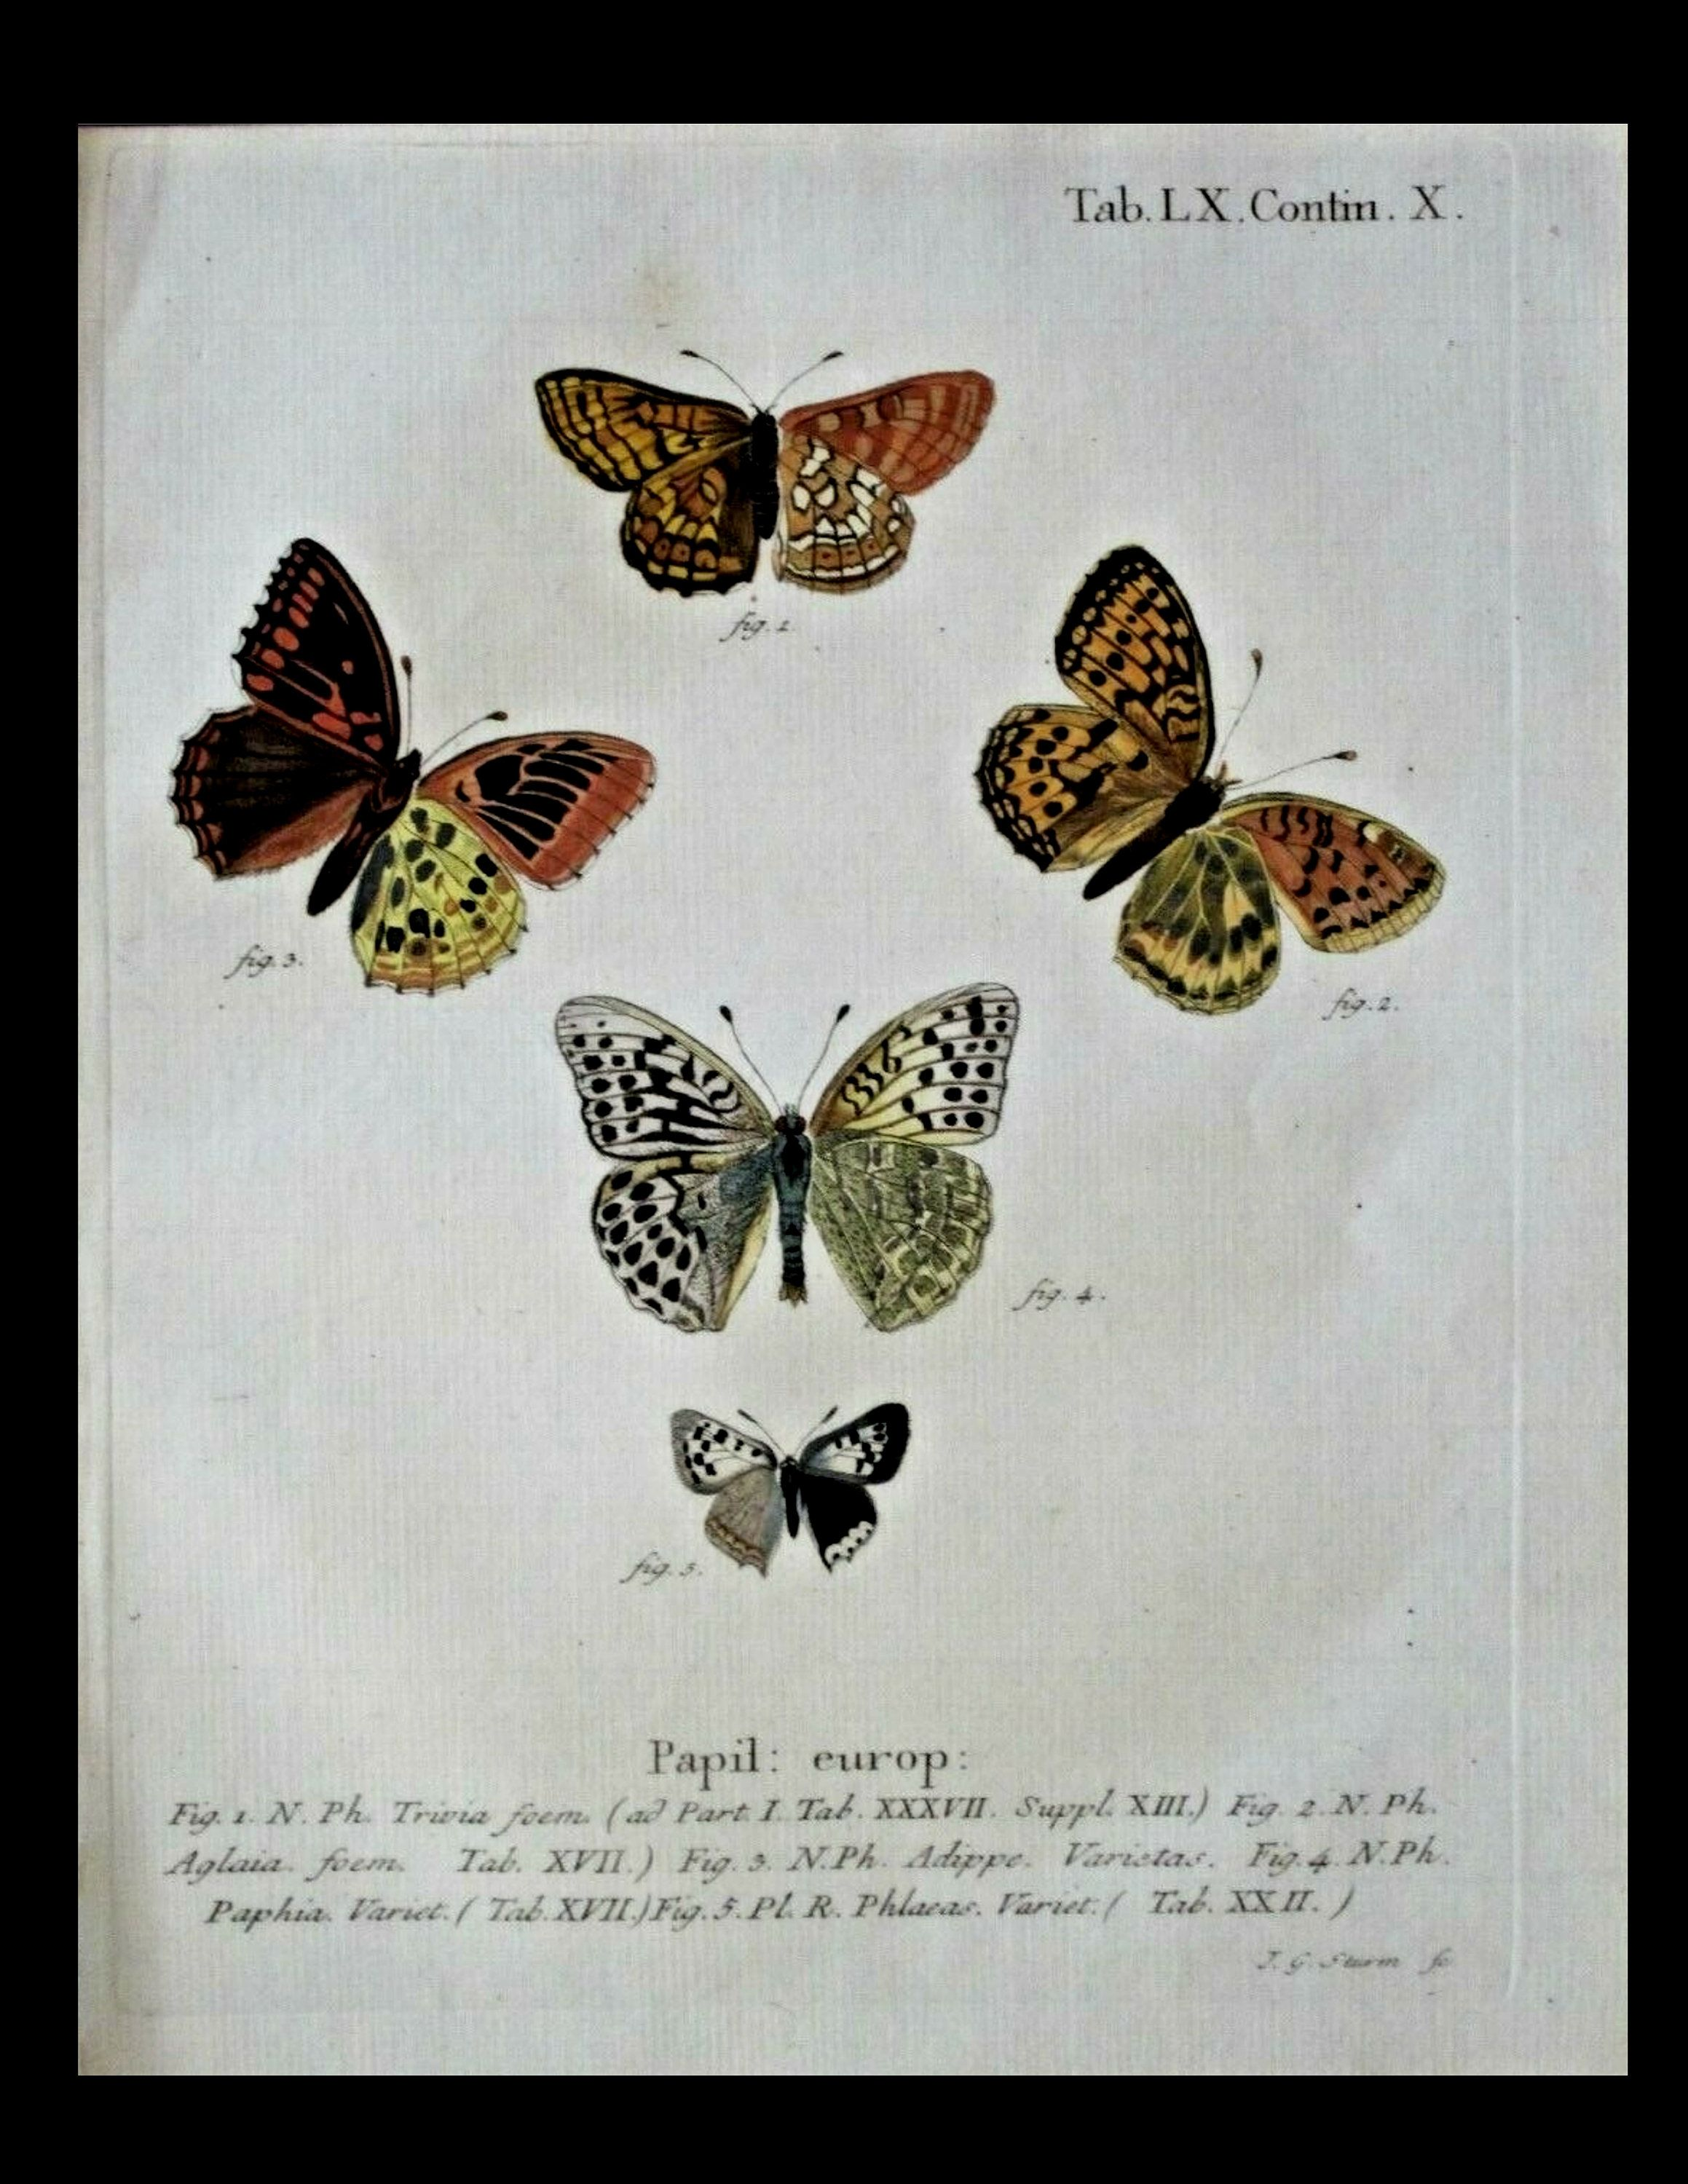 Butterfly plate Lepidoptera Rare 19th Century Original Antique Butterfly Engraving Antique print Butterfly Moths